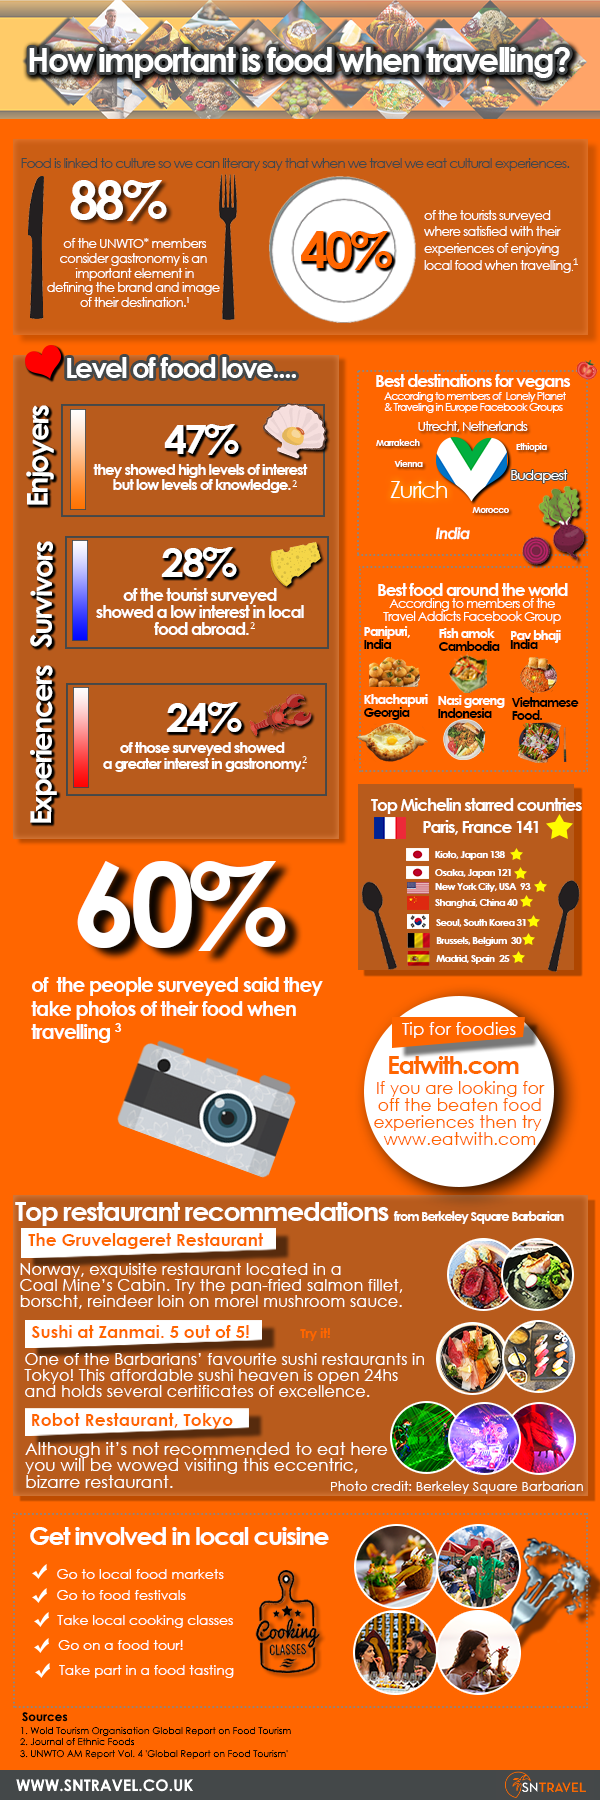 How important is food when travelling - Infographic